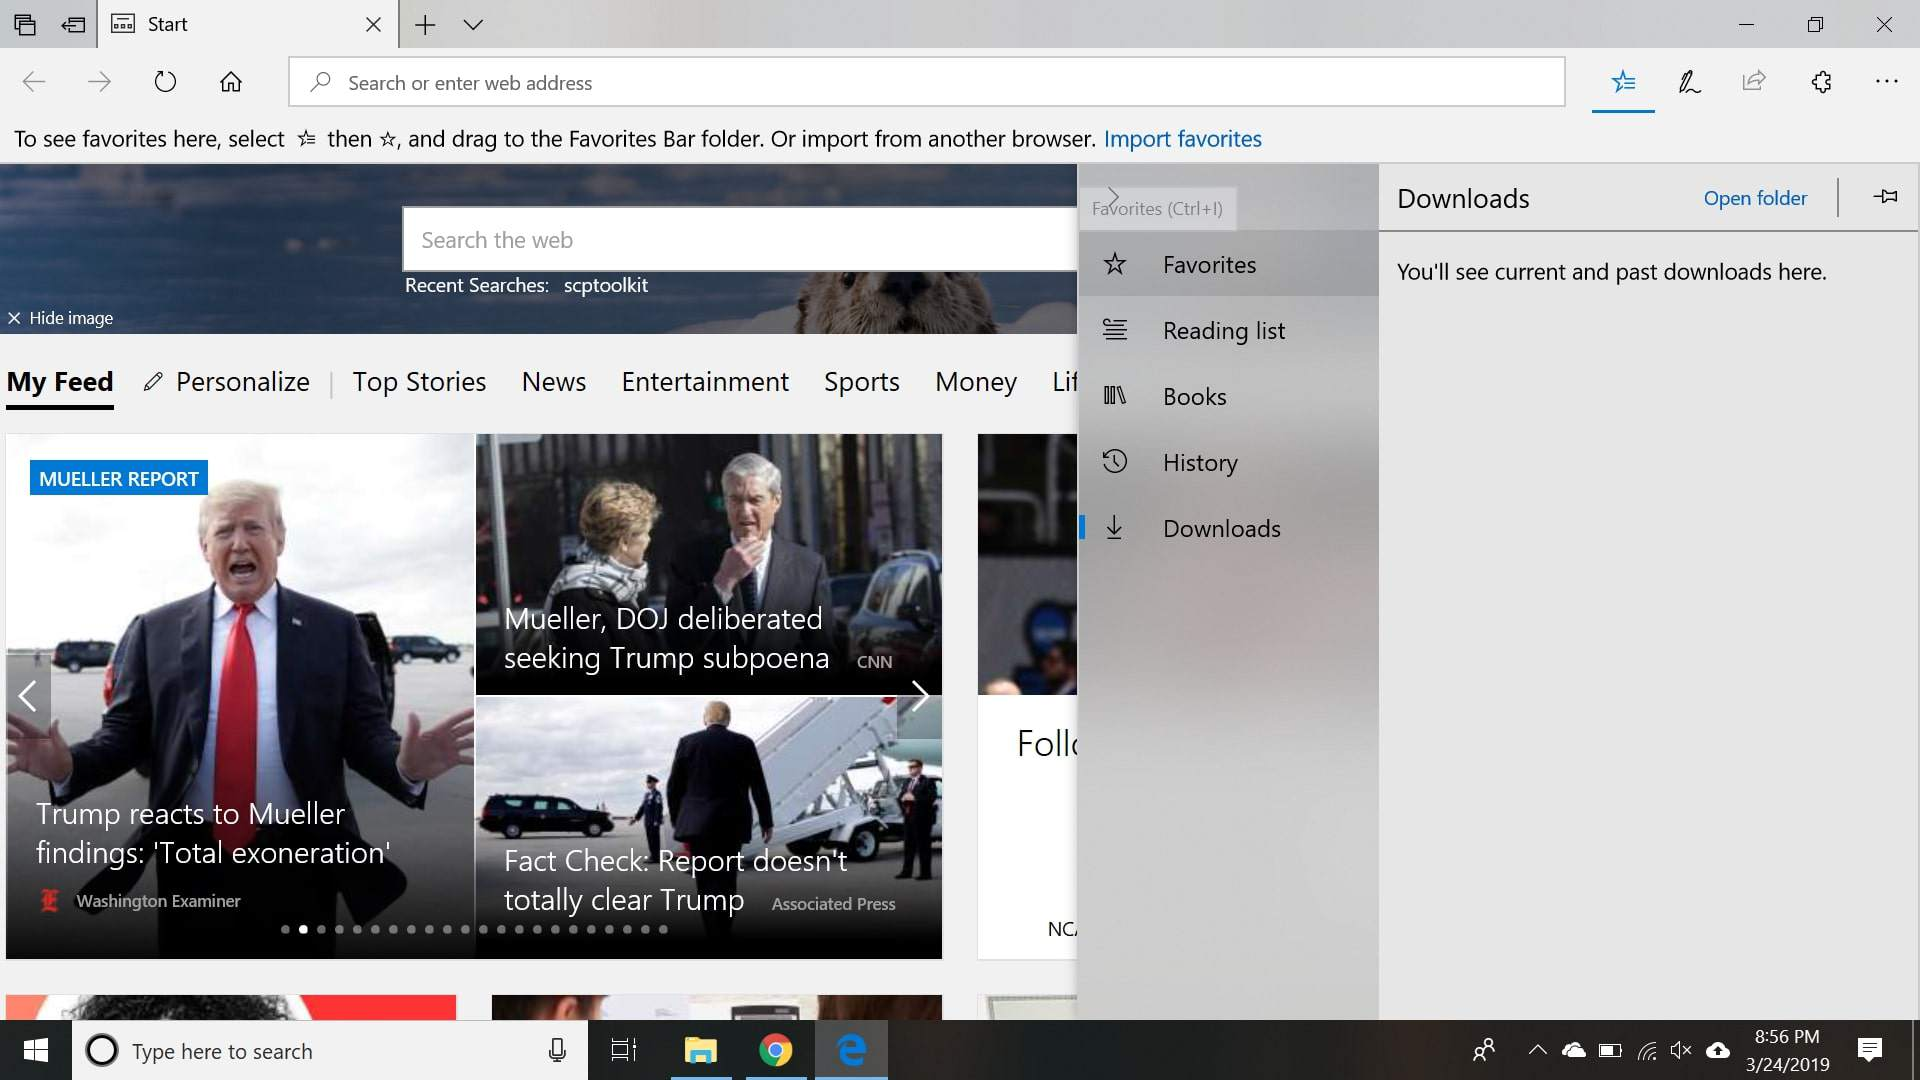 How to Show the Favorites Bar in Microsoft Edge